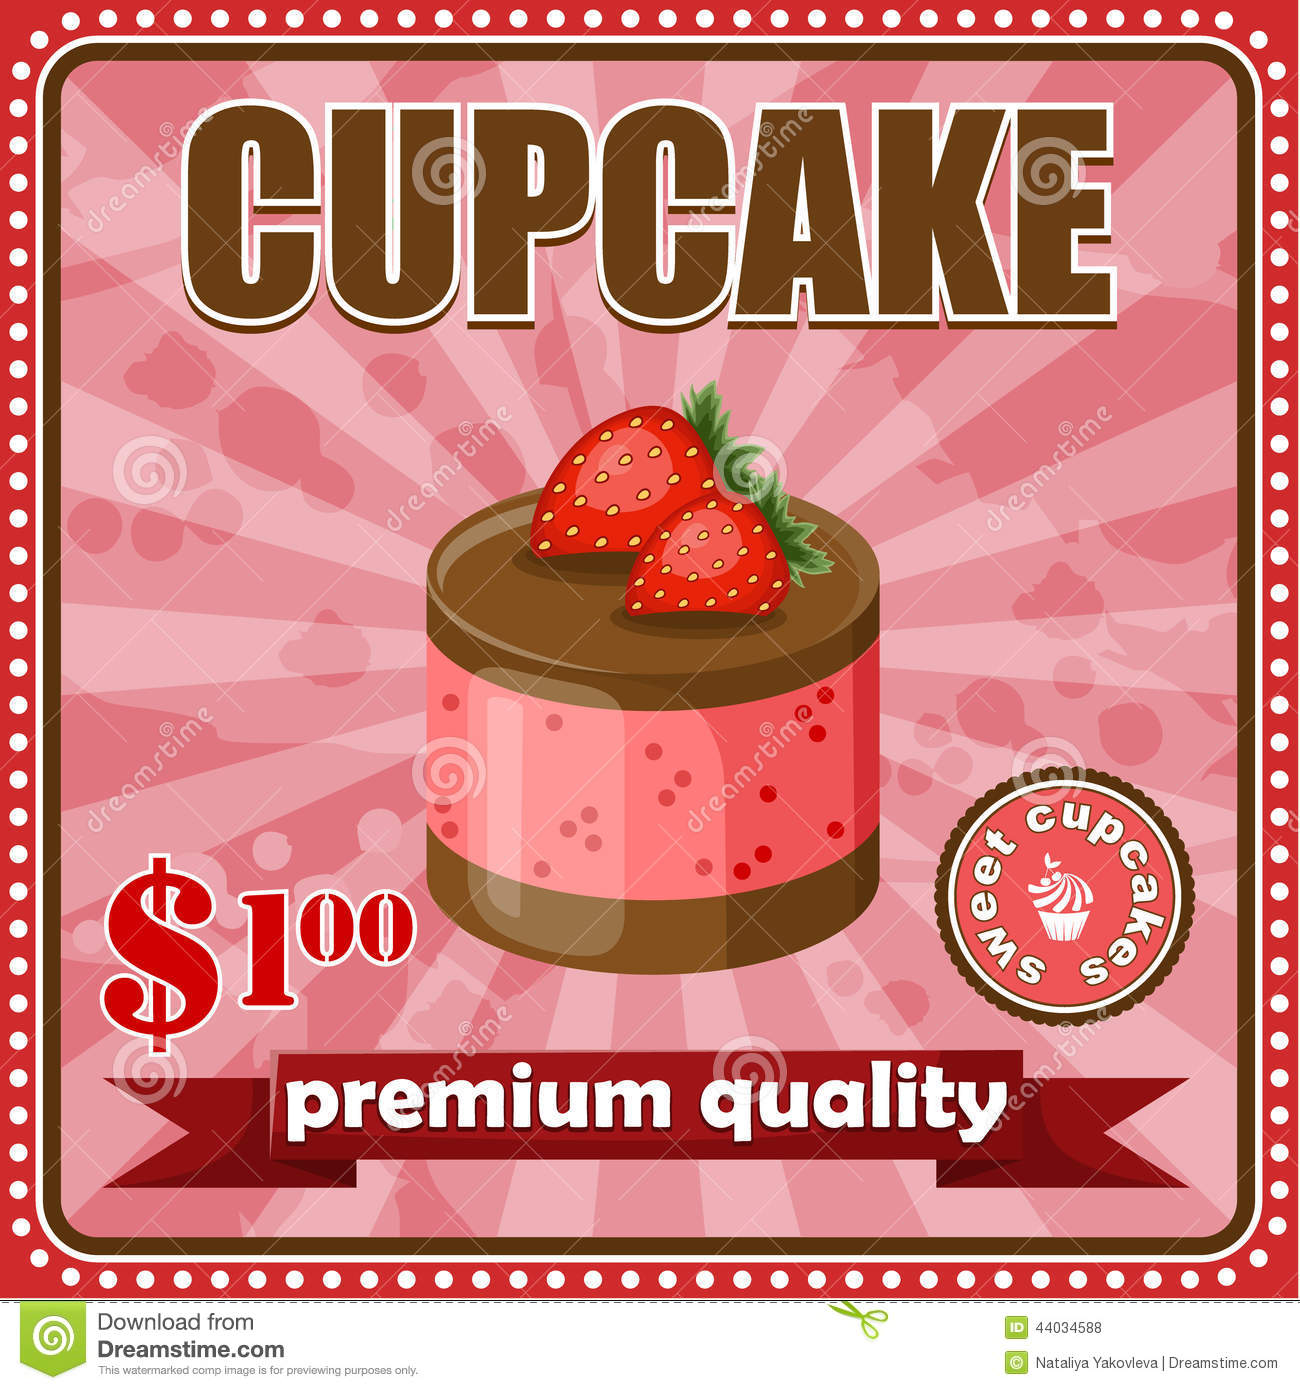 Vintage Cupcake Poster. Stock Vector - Image: 44244730